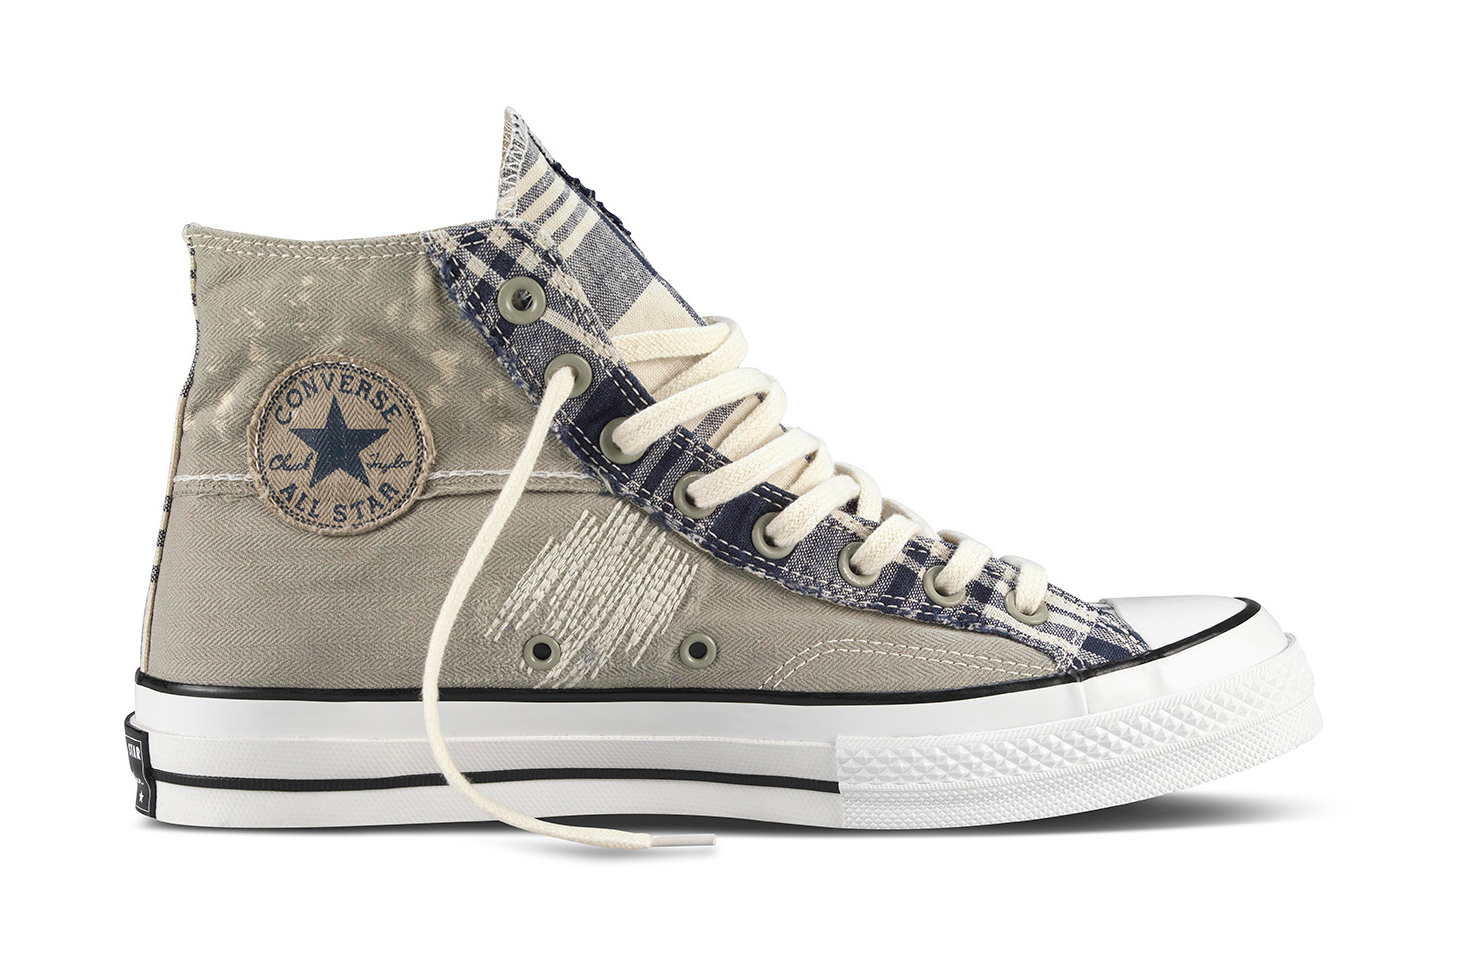 dr romanelli x converse first string 1970s chuck taylor